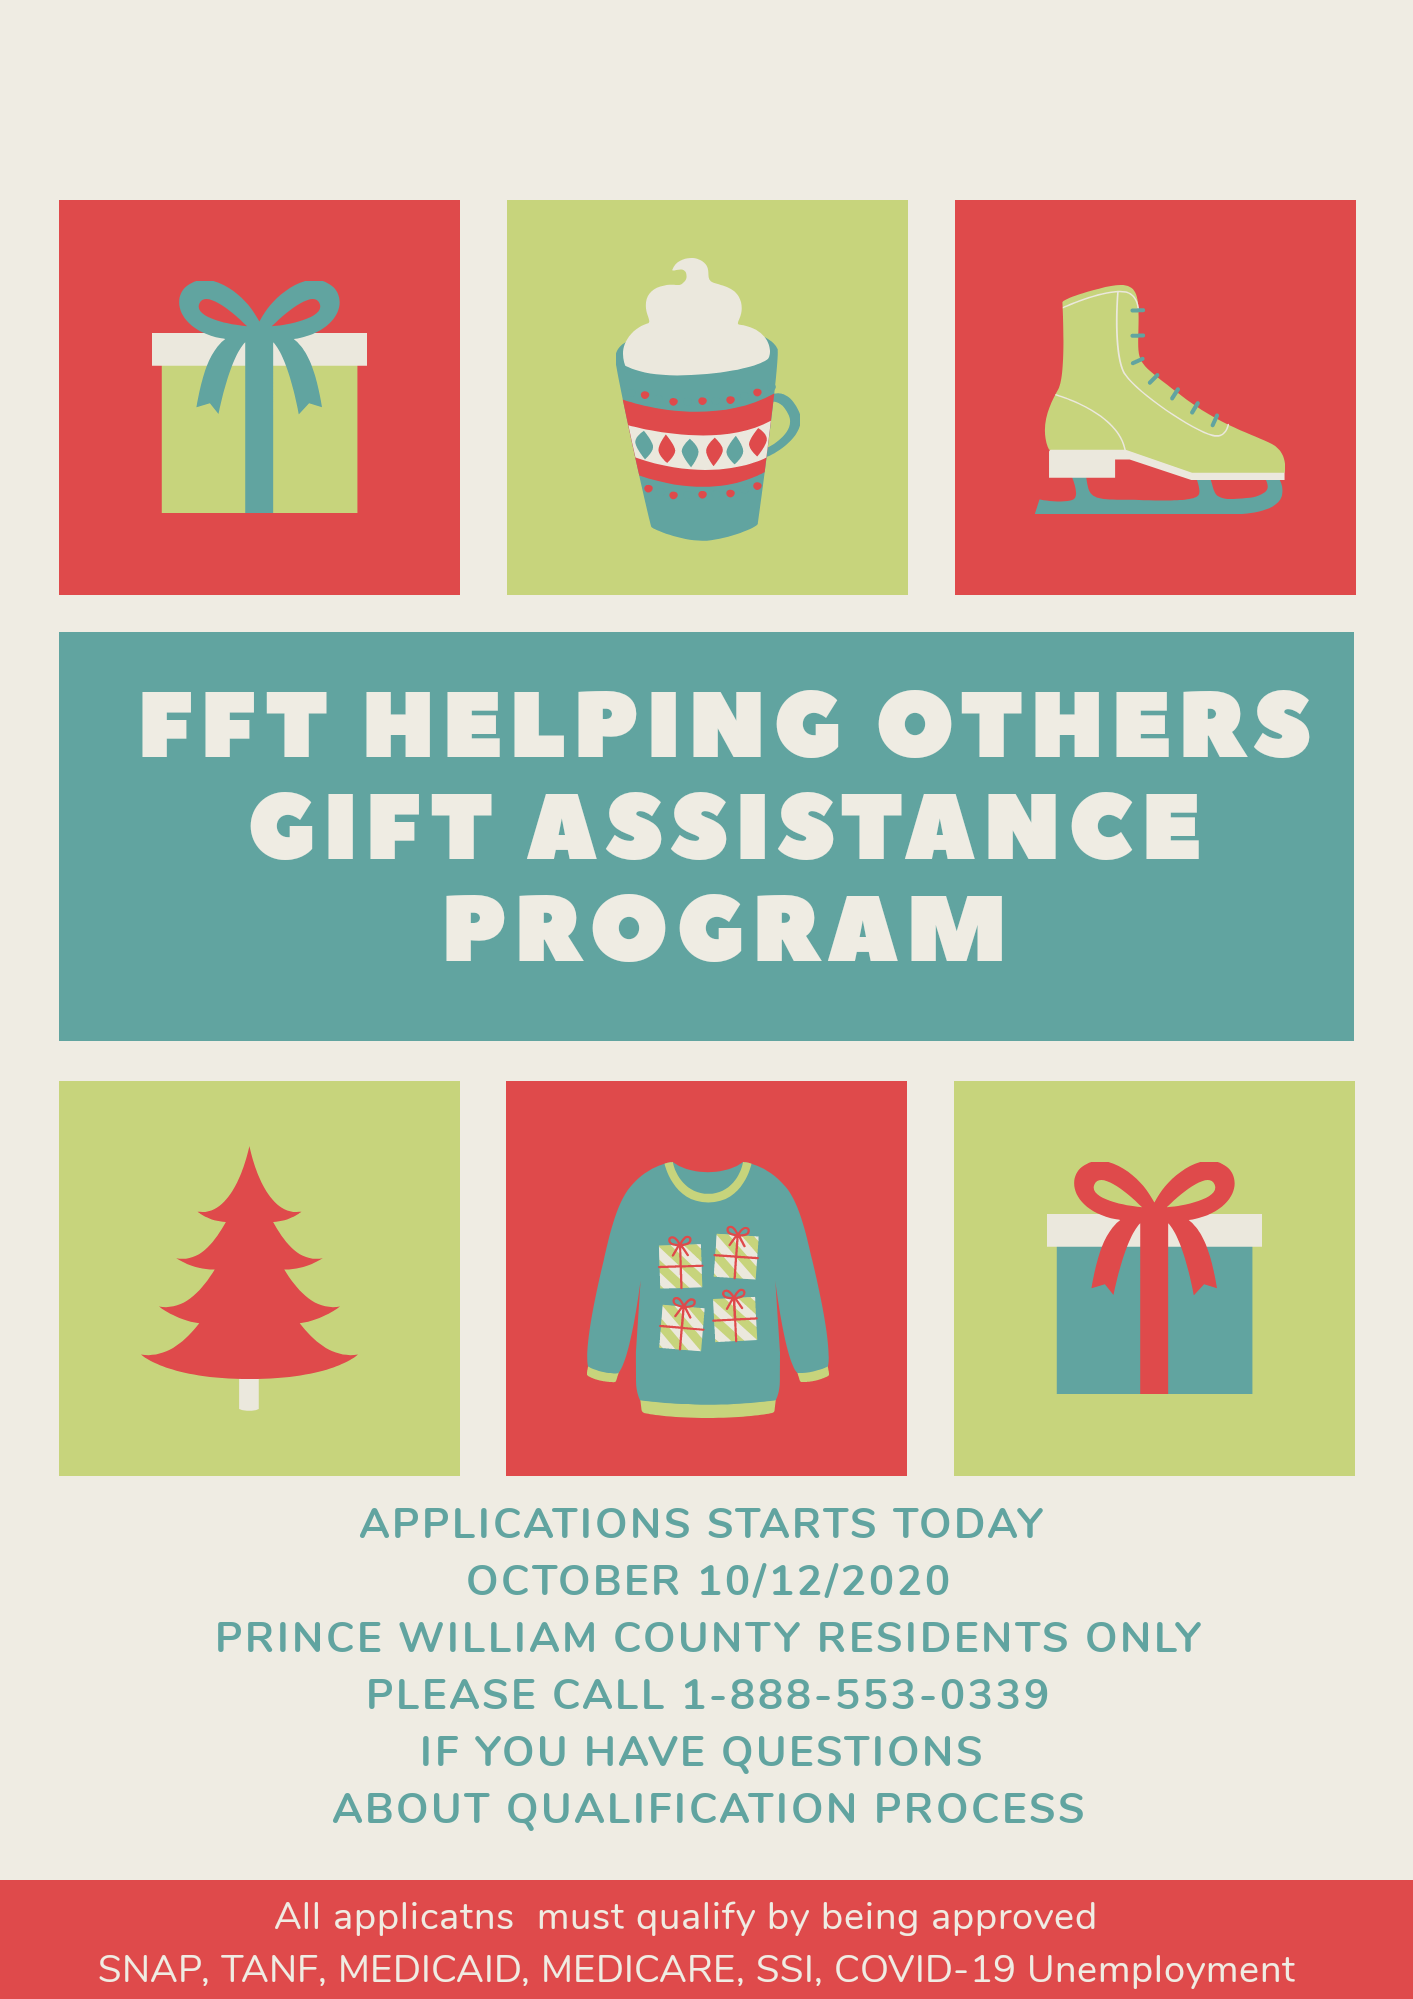 FFT Helping Others